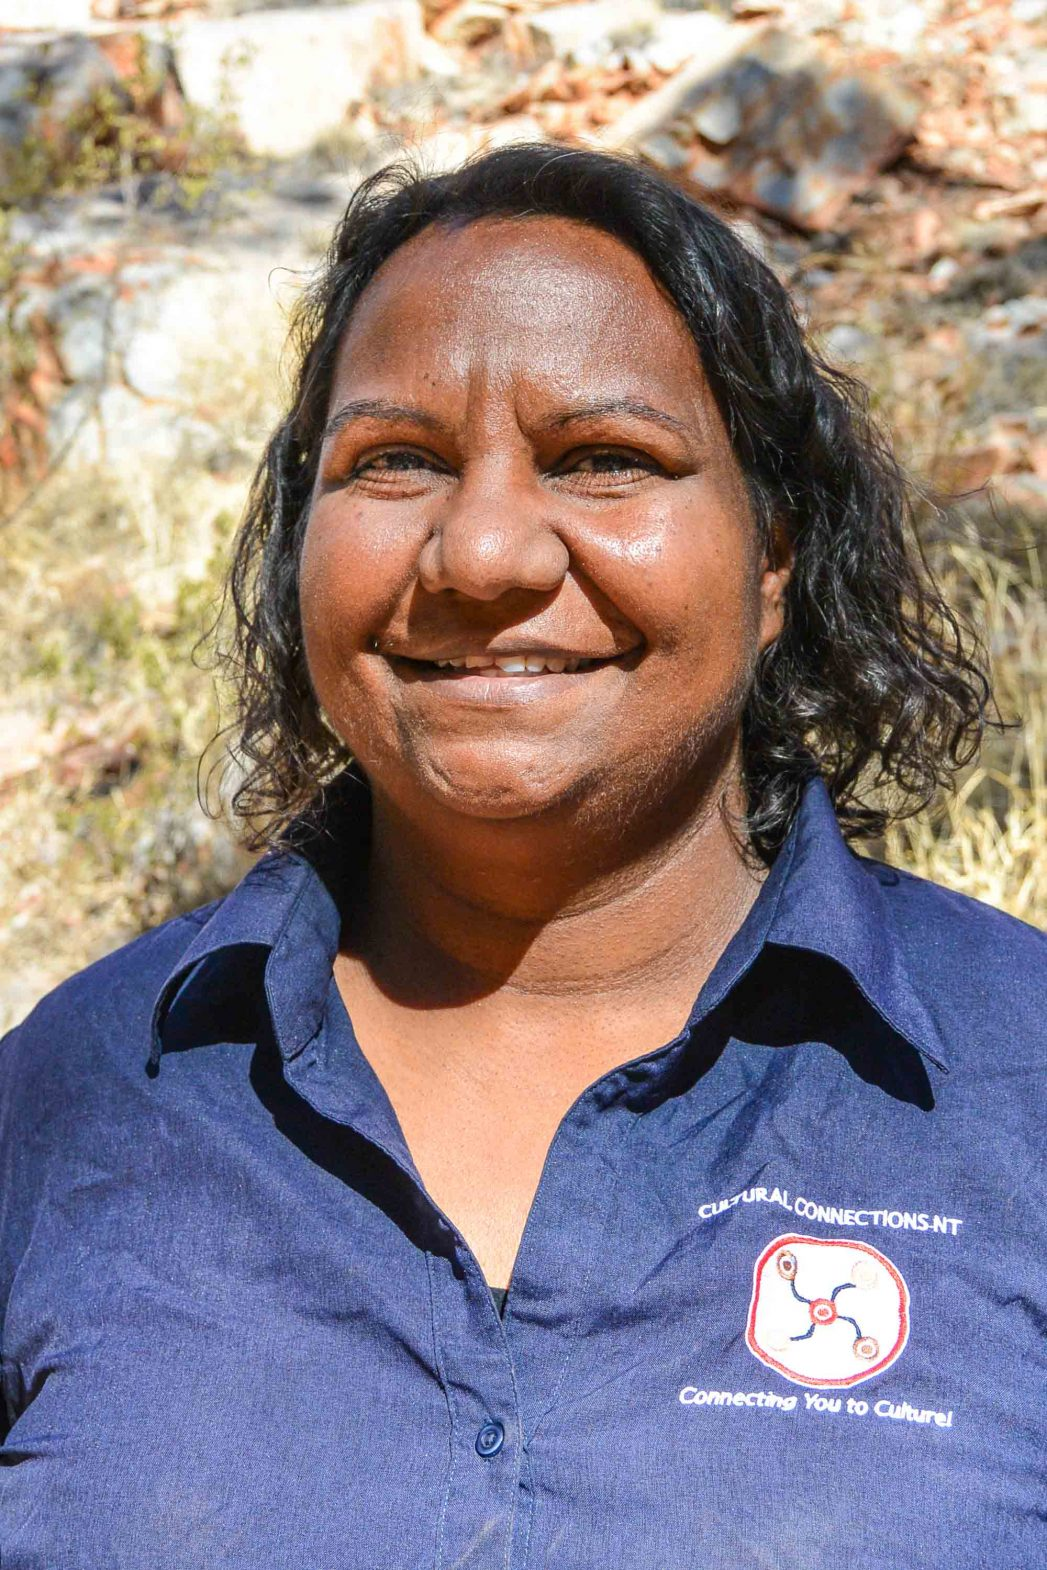 Dea Mack, a guide from Cultural Connections NT, Australia.